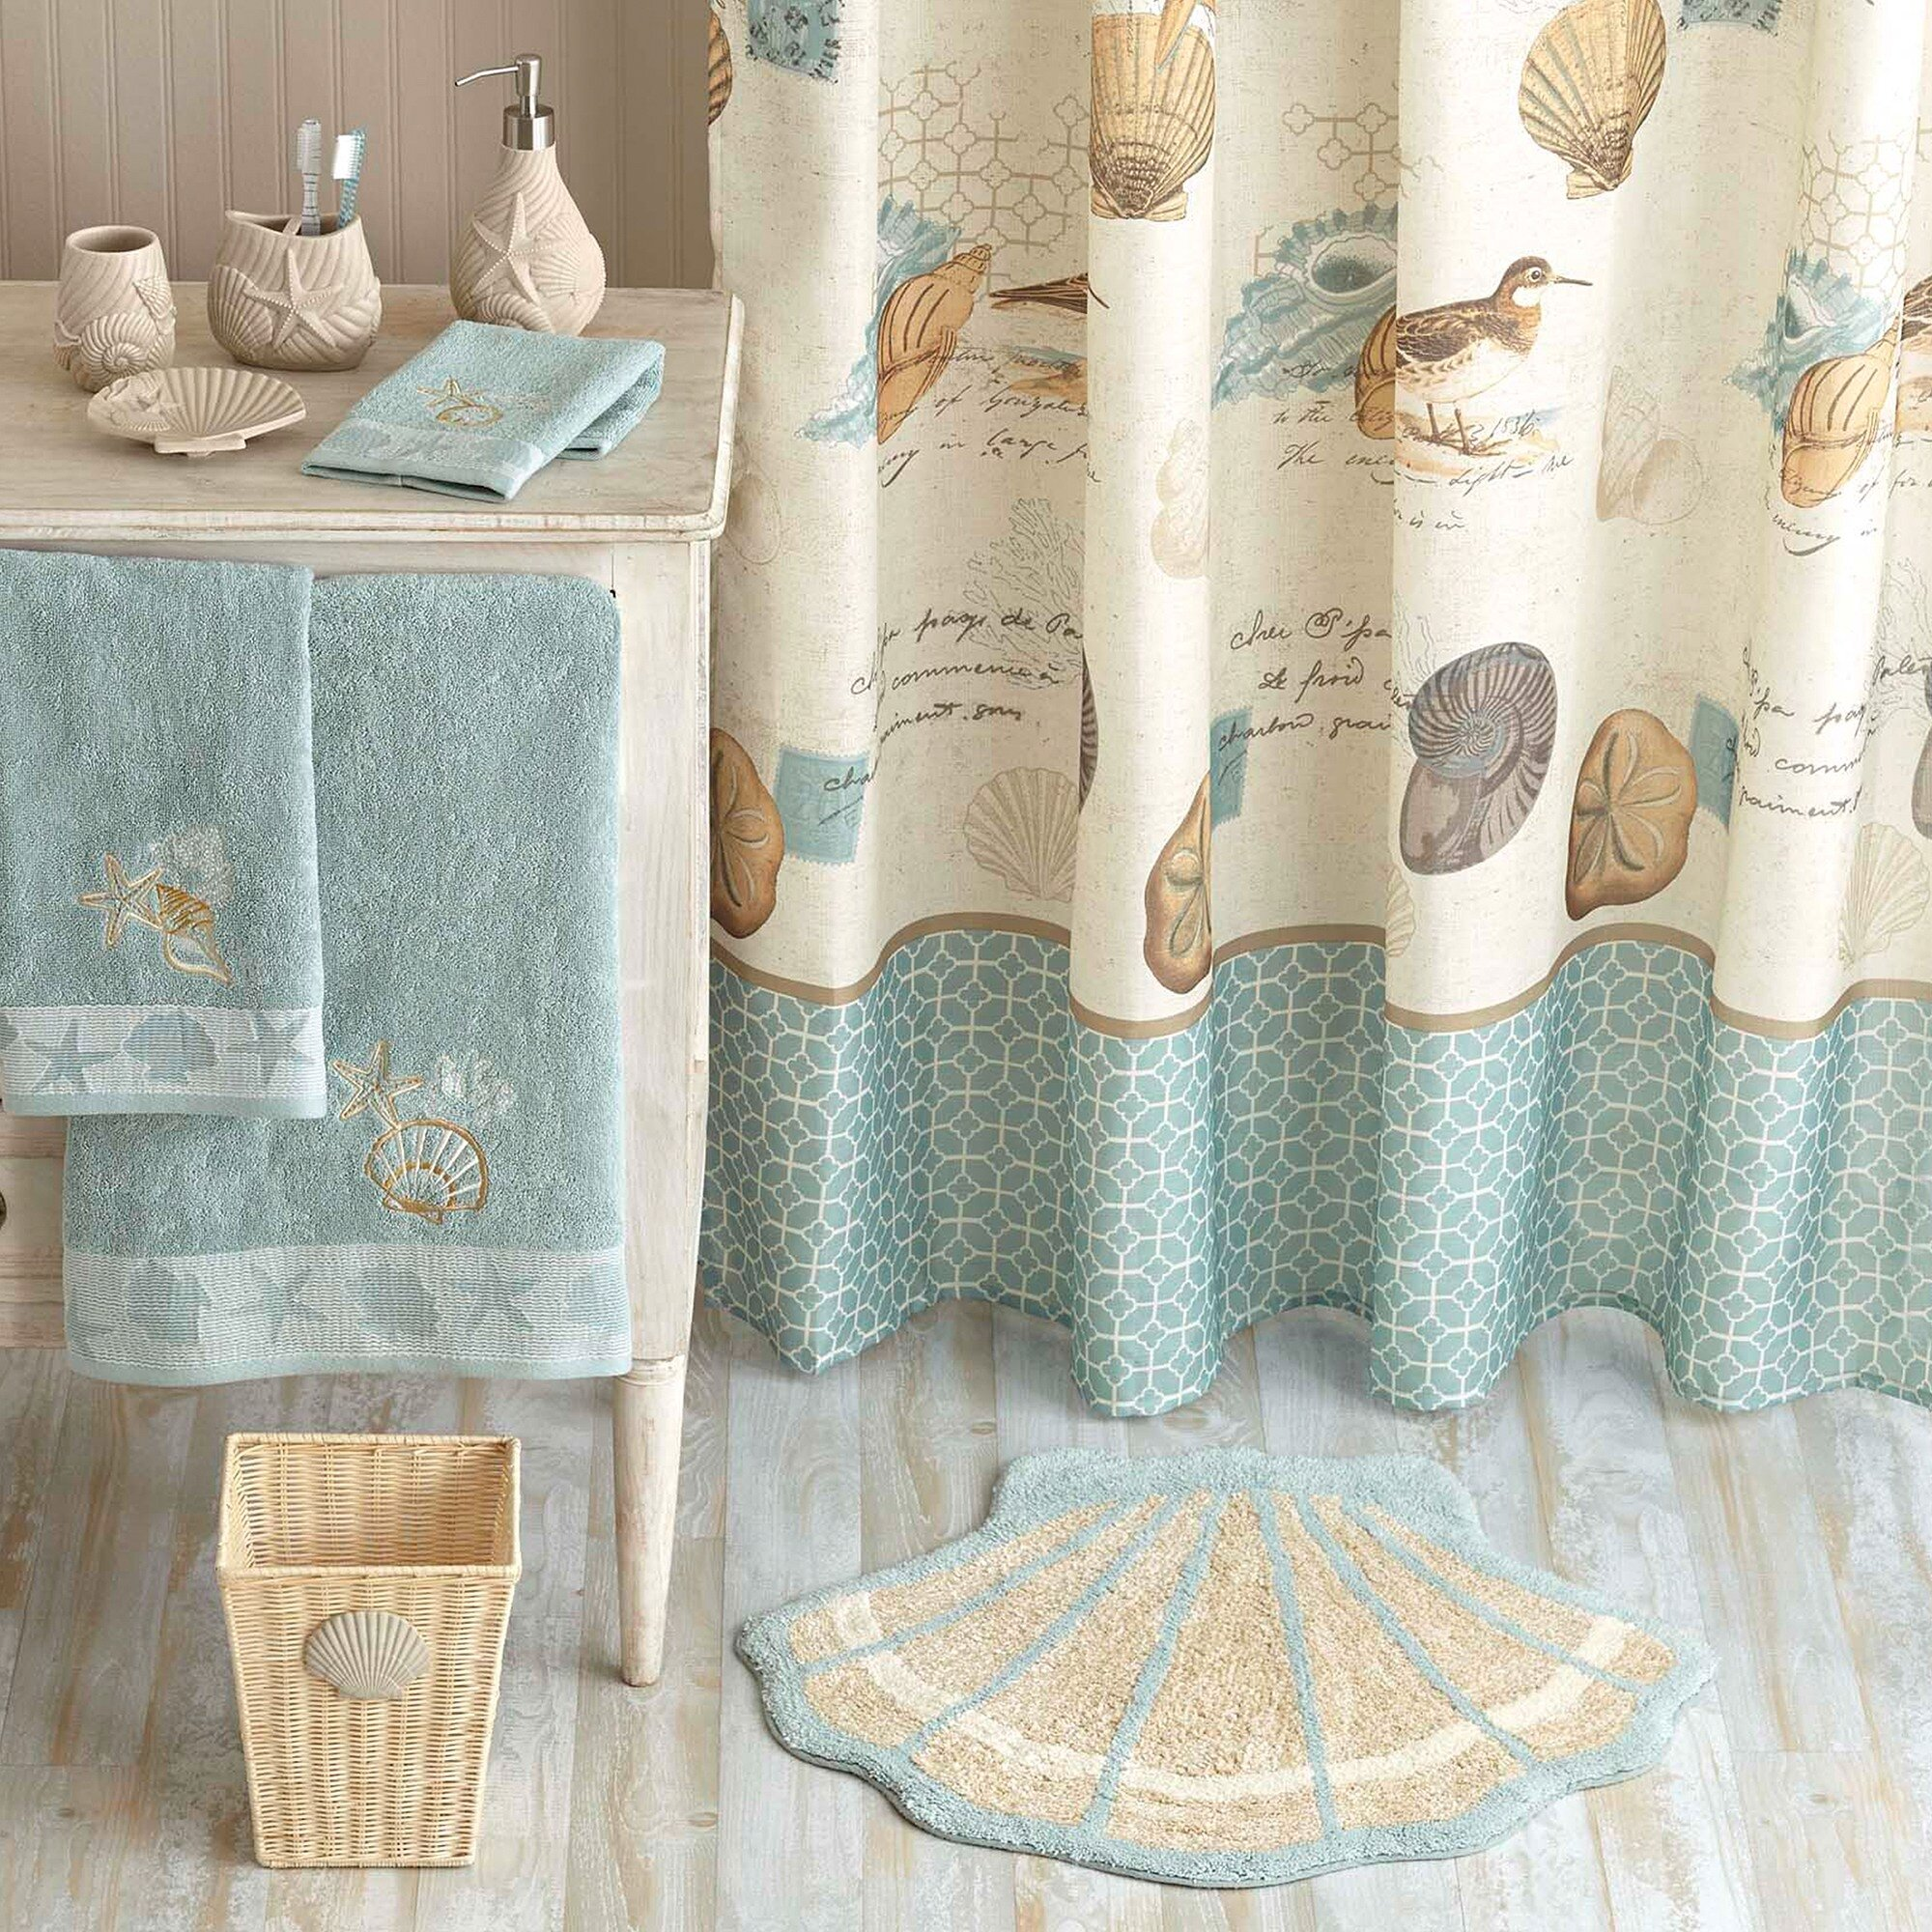 Walmart Shower Curtain for Cute Your Bathroom Decor Ideas: Fabric Shower Curtains | Walmart Shower Curtain | Walmart Shower Curtain Rod